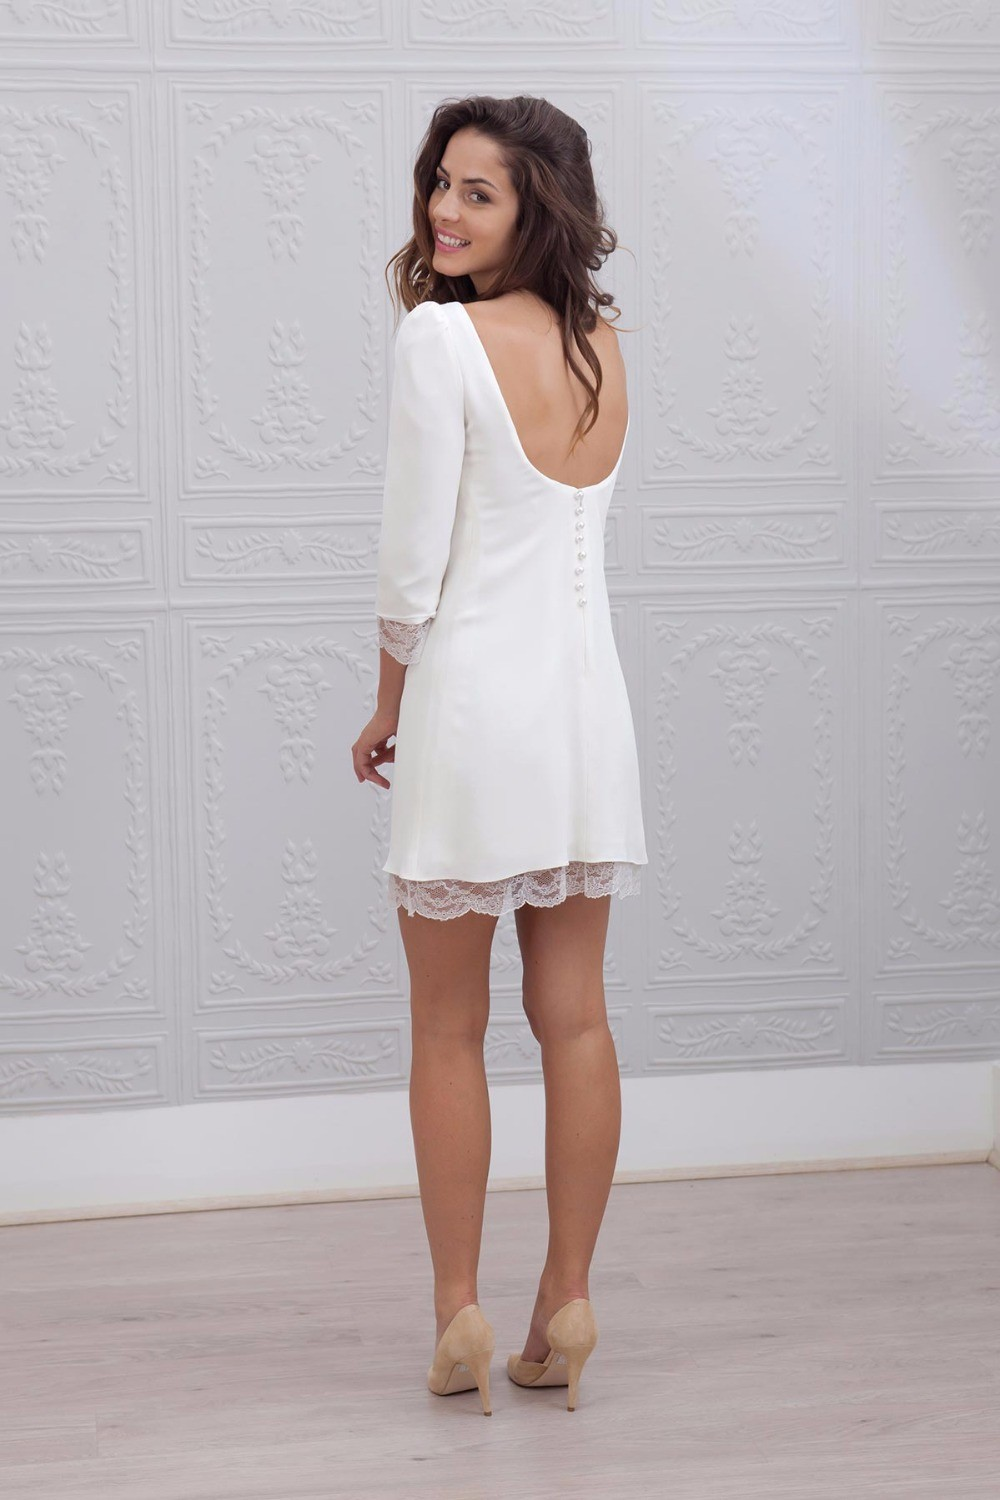 2016-New-Designer-Short-Mini-Sheath-Fitted-3-4-Sleeves-Lace-Satin-Informal-Beach-Wedding-Dresses (1)